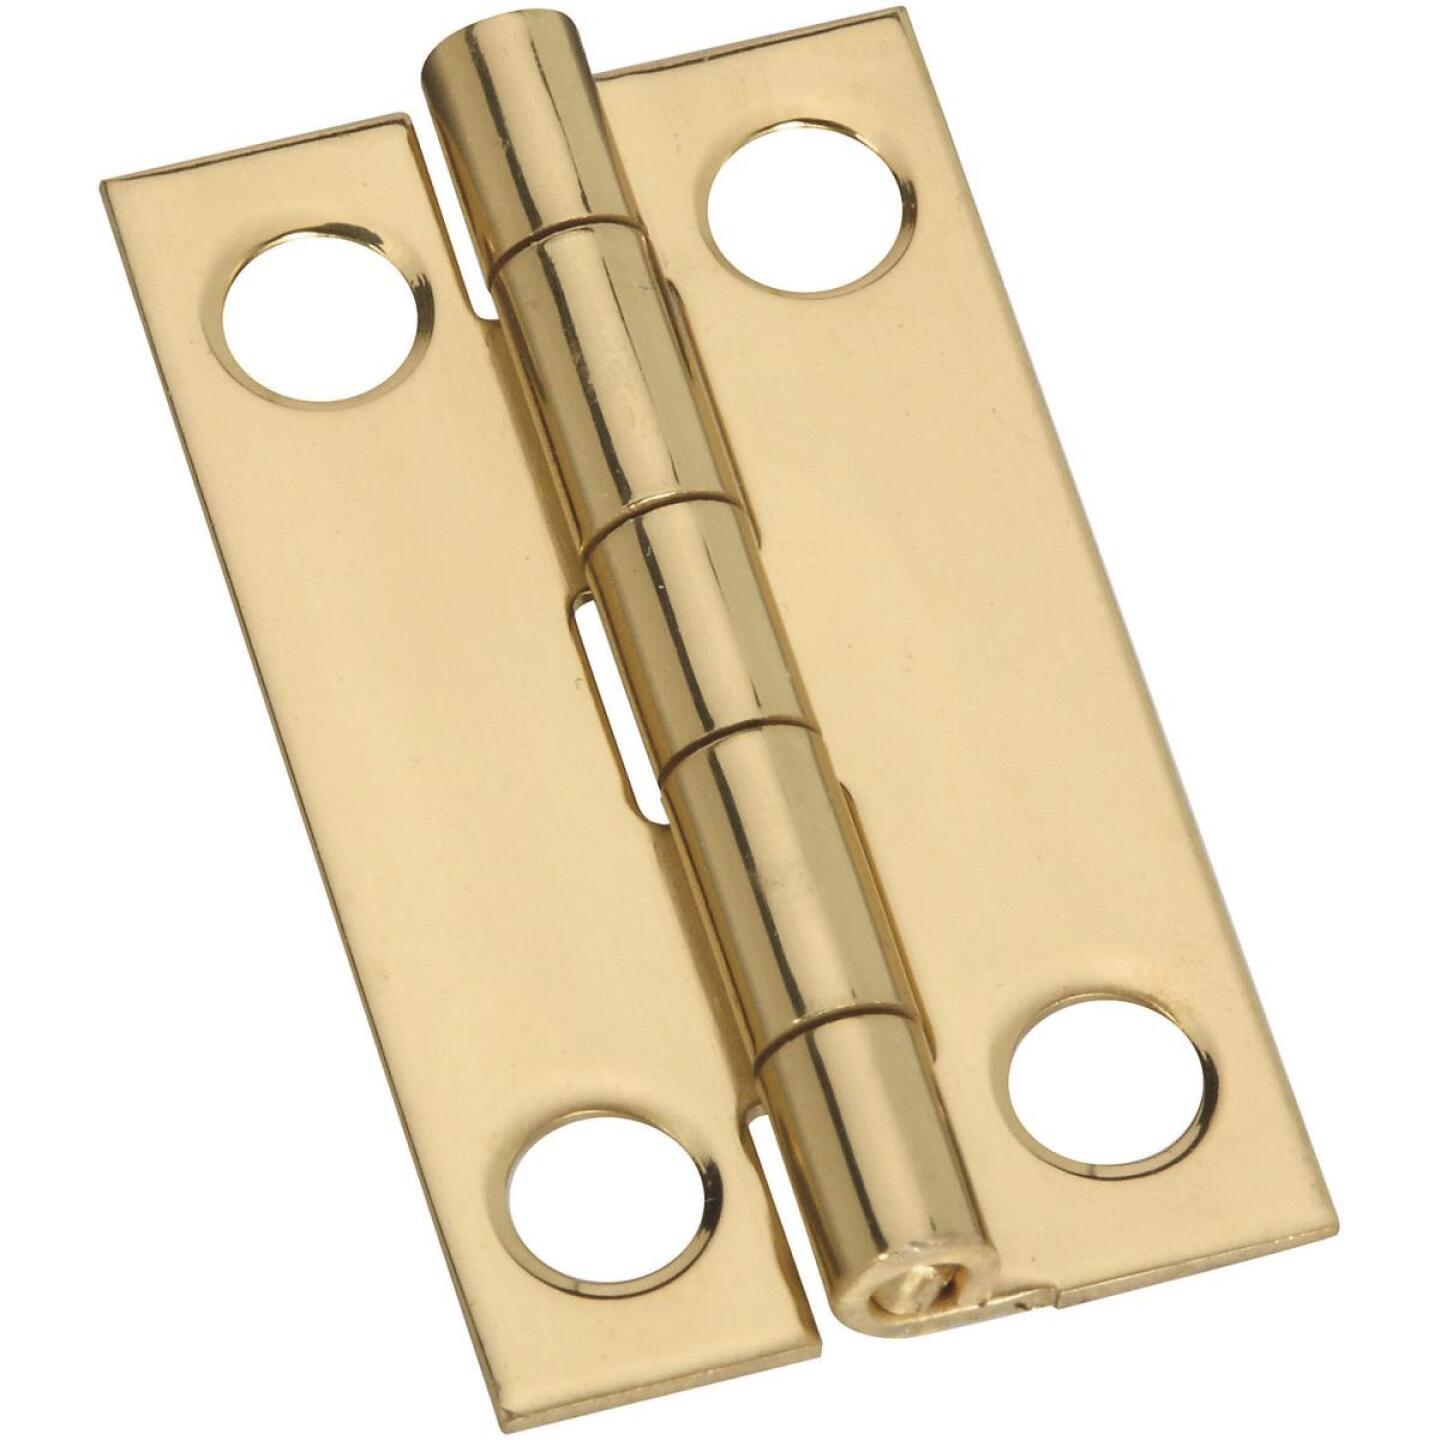 National 7/8 In. x 1-1/2 In. Brass Narrow Decorative Hinge (2-Pack) Image 1